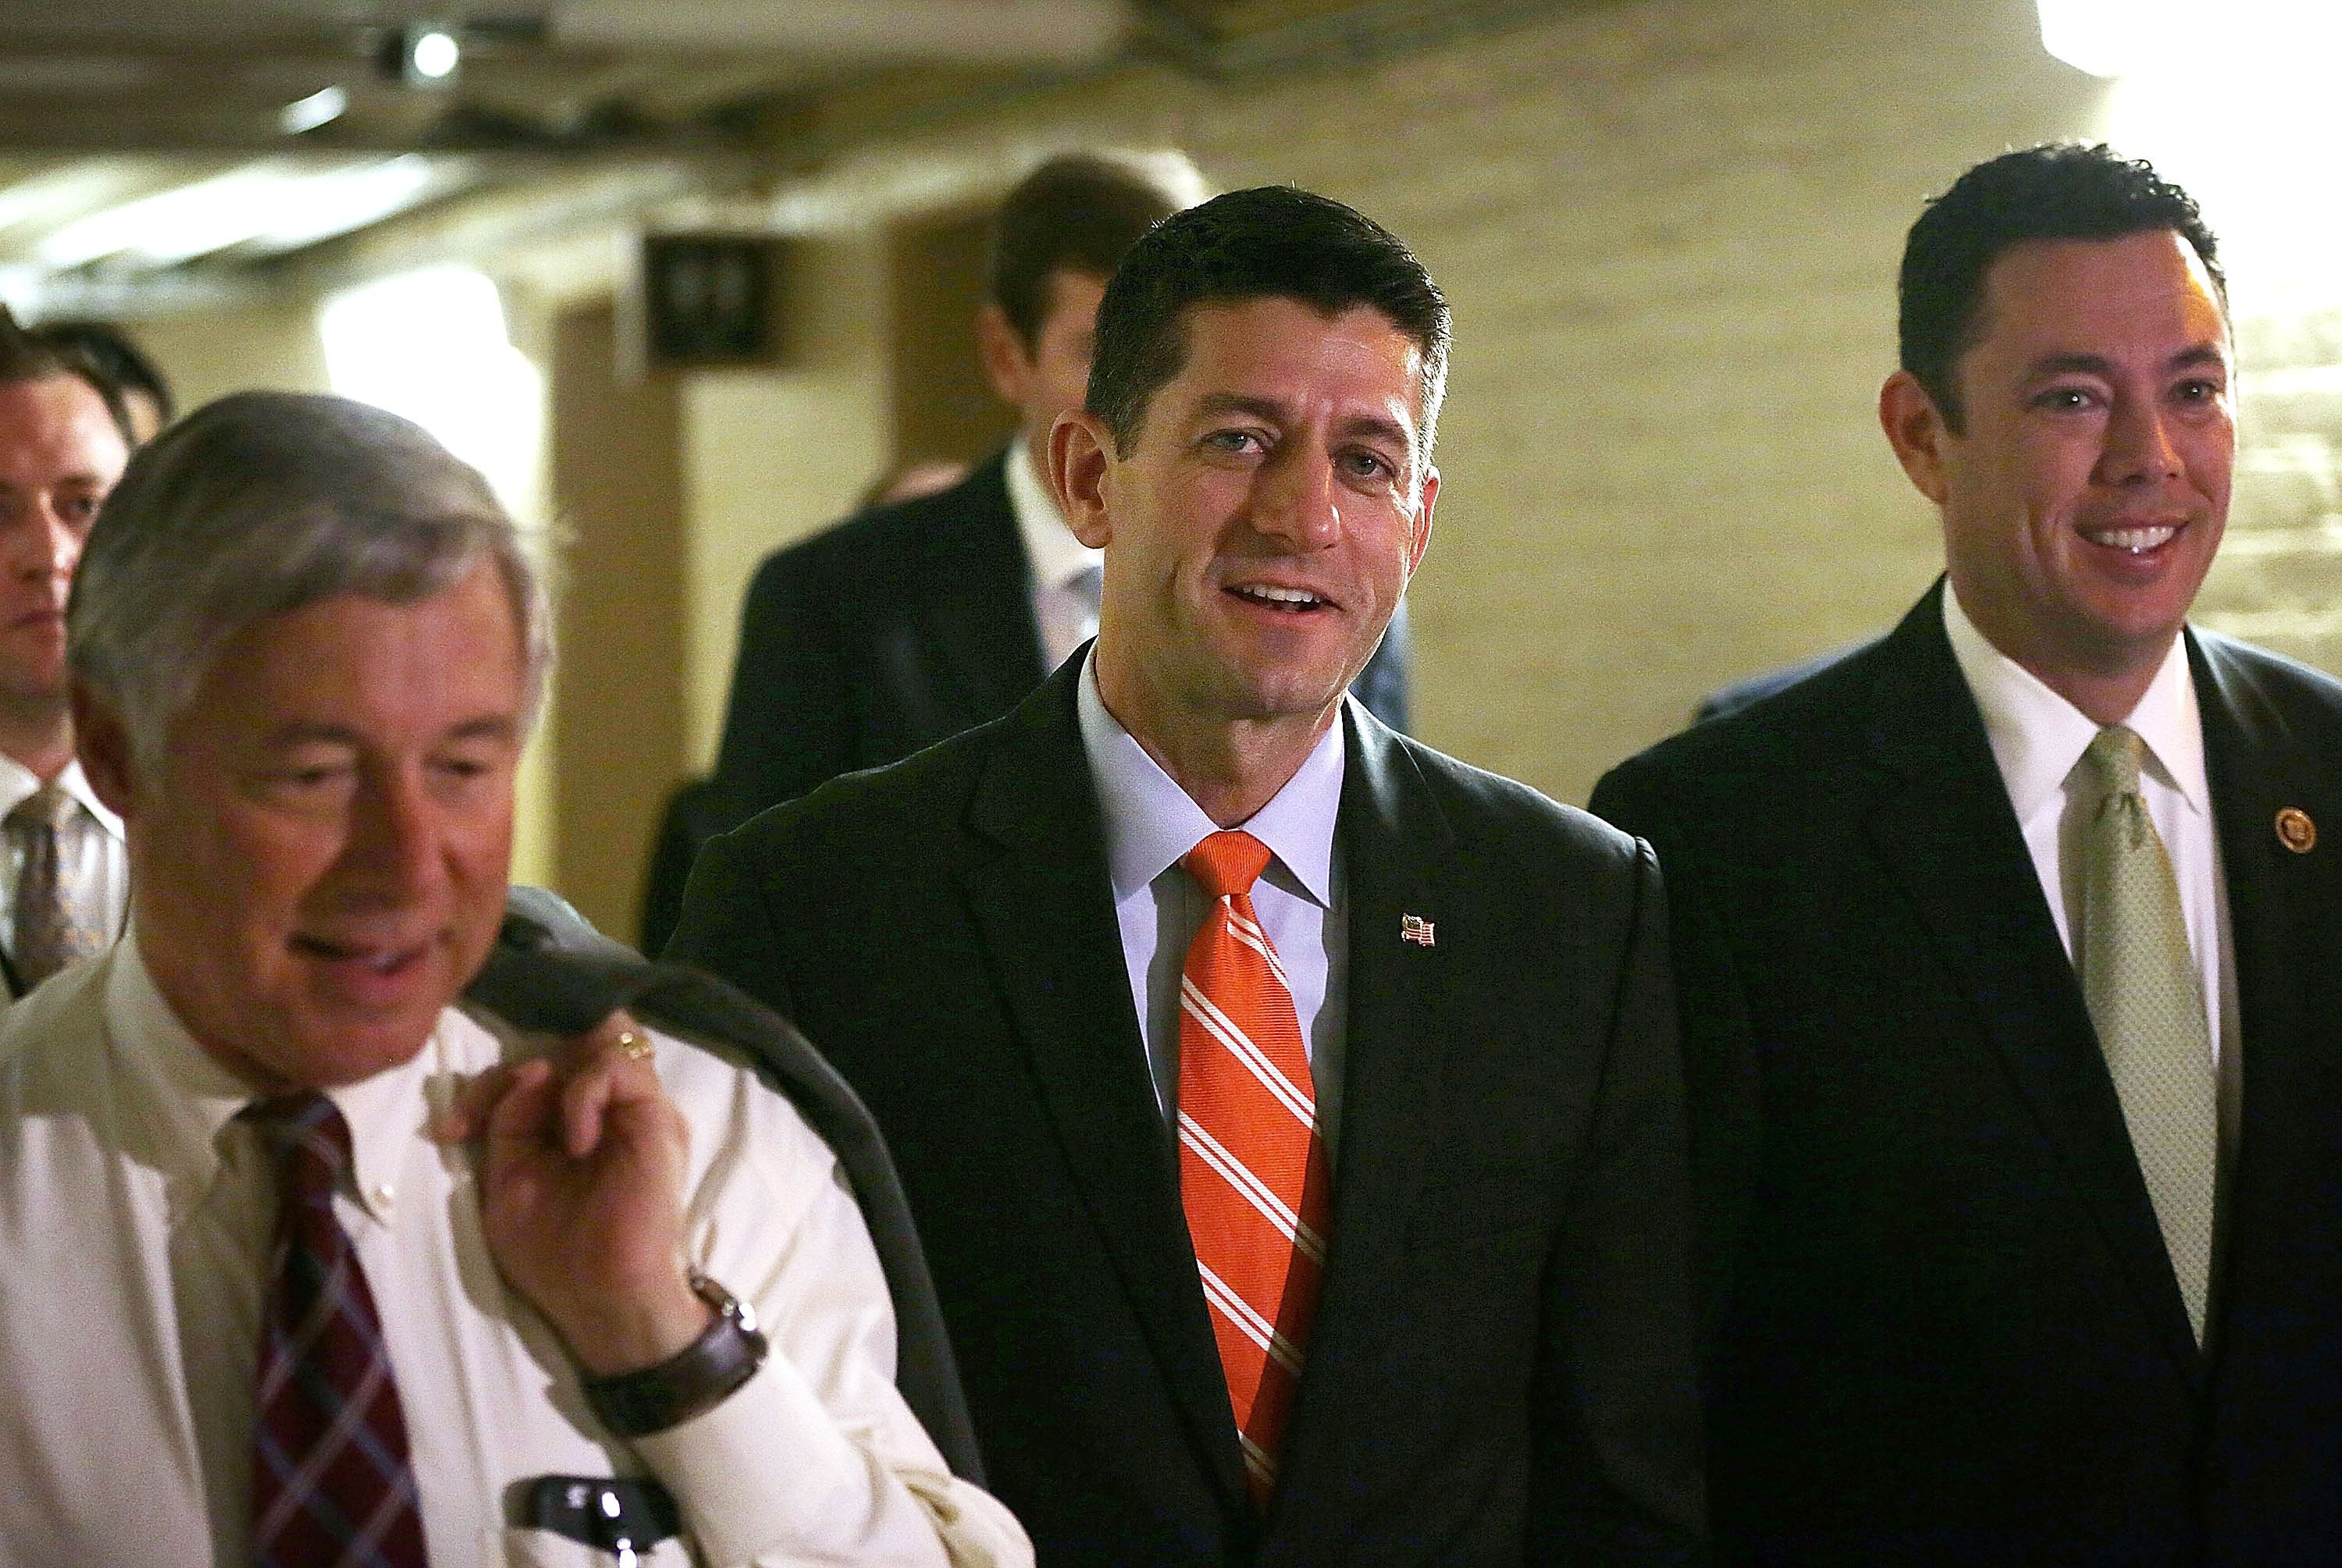 WASHINGTON, DC - NOVEMBER 05: U.S. Speaker of the House Rep. Paul Ryan (R-WI) (C) arrives with Rep. Fred Upton (R-MI) (L) and Rep. Jason Chaffetz (R-UT) (R) arrive for a House Republican Conference meeting November 5, 2015 at the Capitol in Washington, DC. House Republicans met to discuss party matters, including picking Brady as the new chairman for the Ways and Means Committee.  (Photo by Alex Wong/Getty Images)